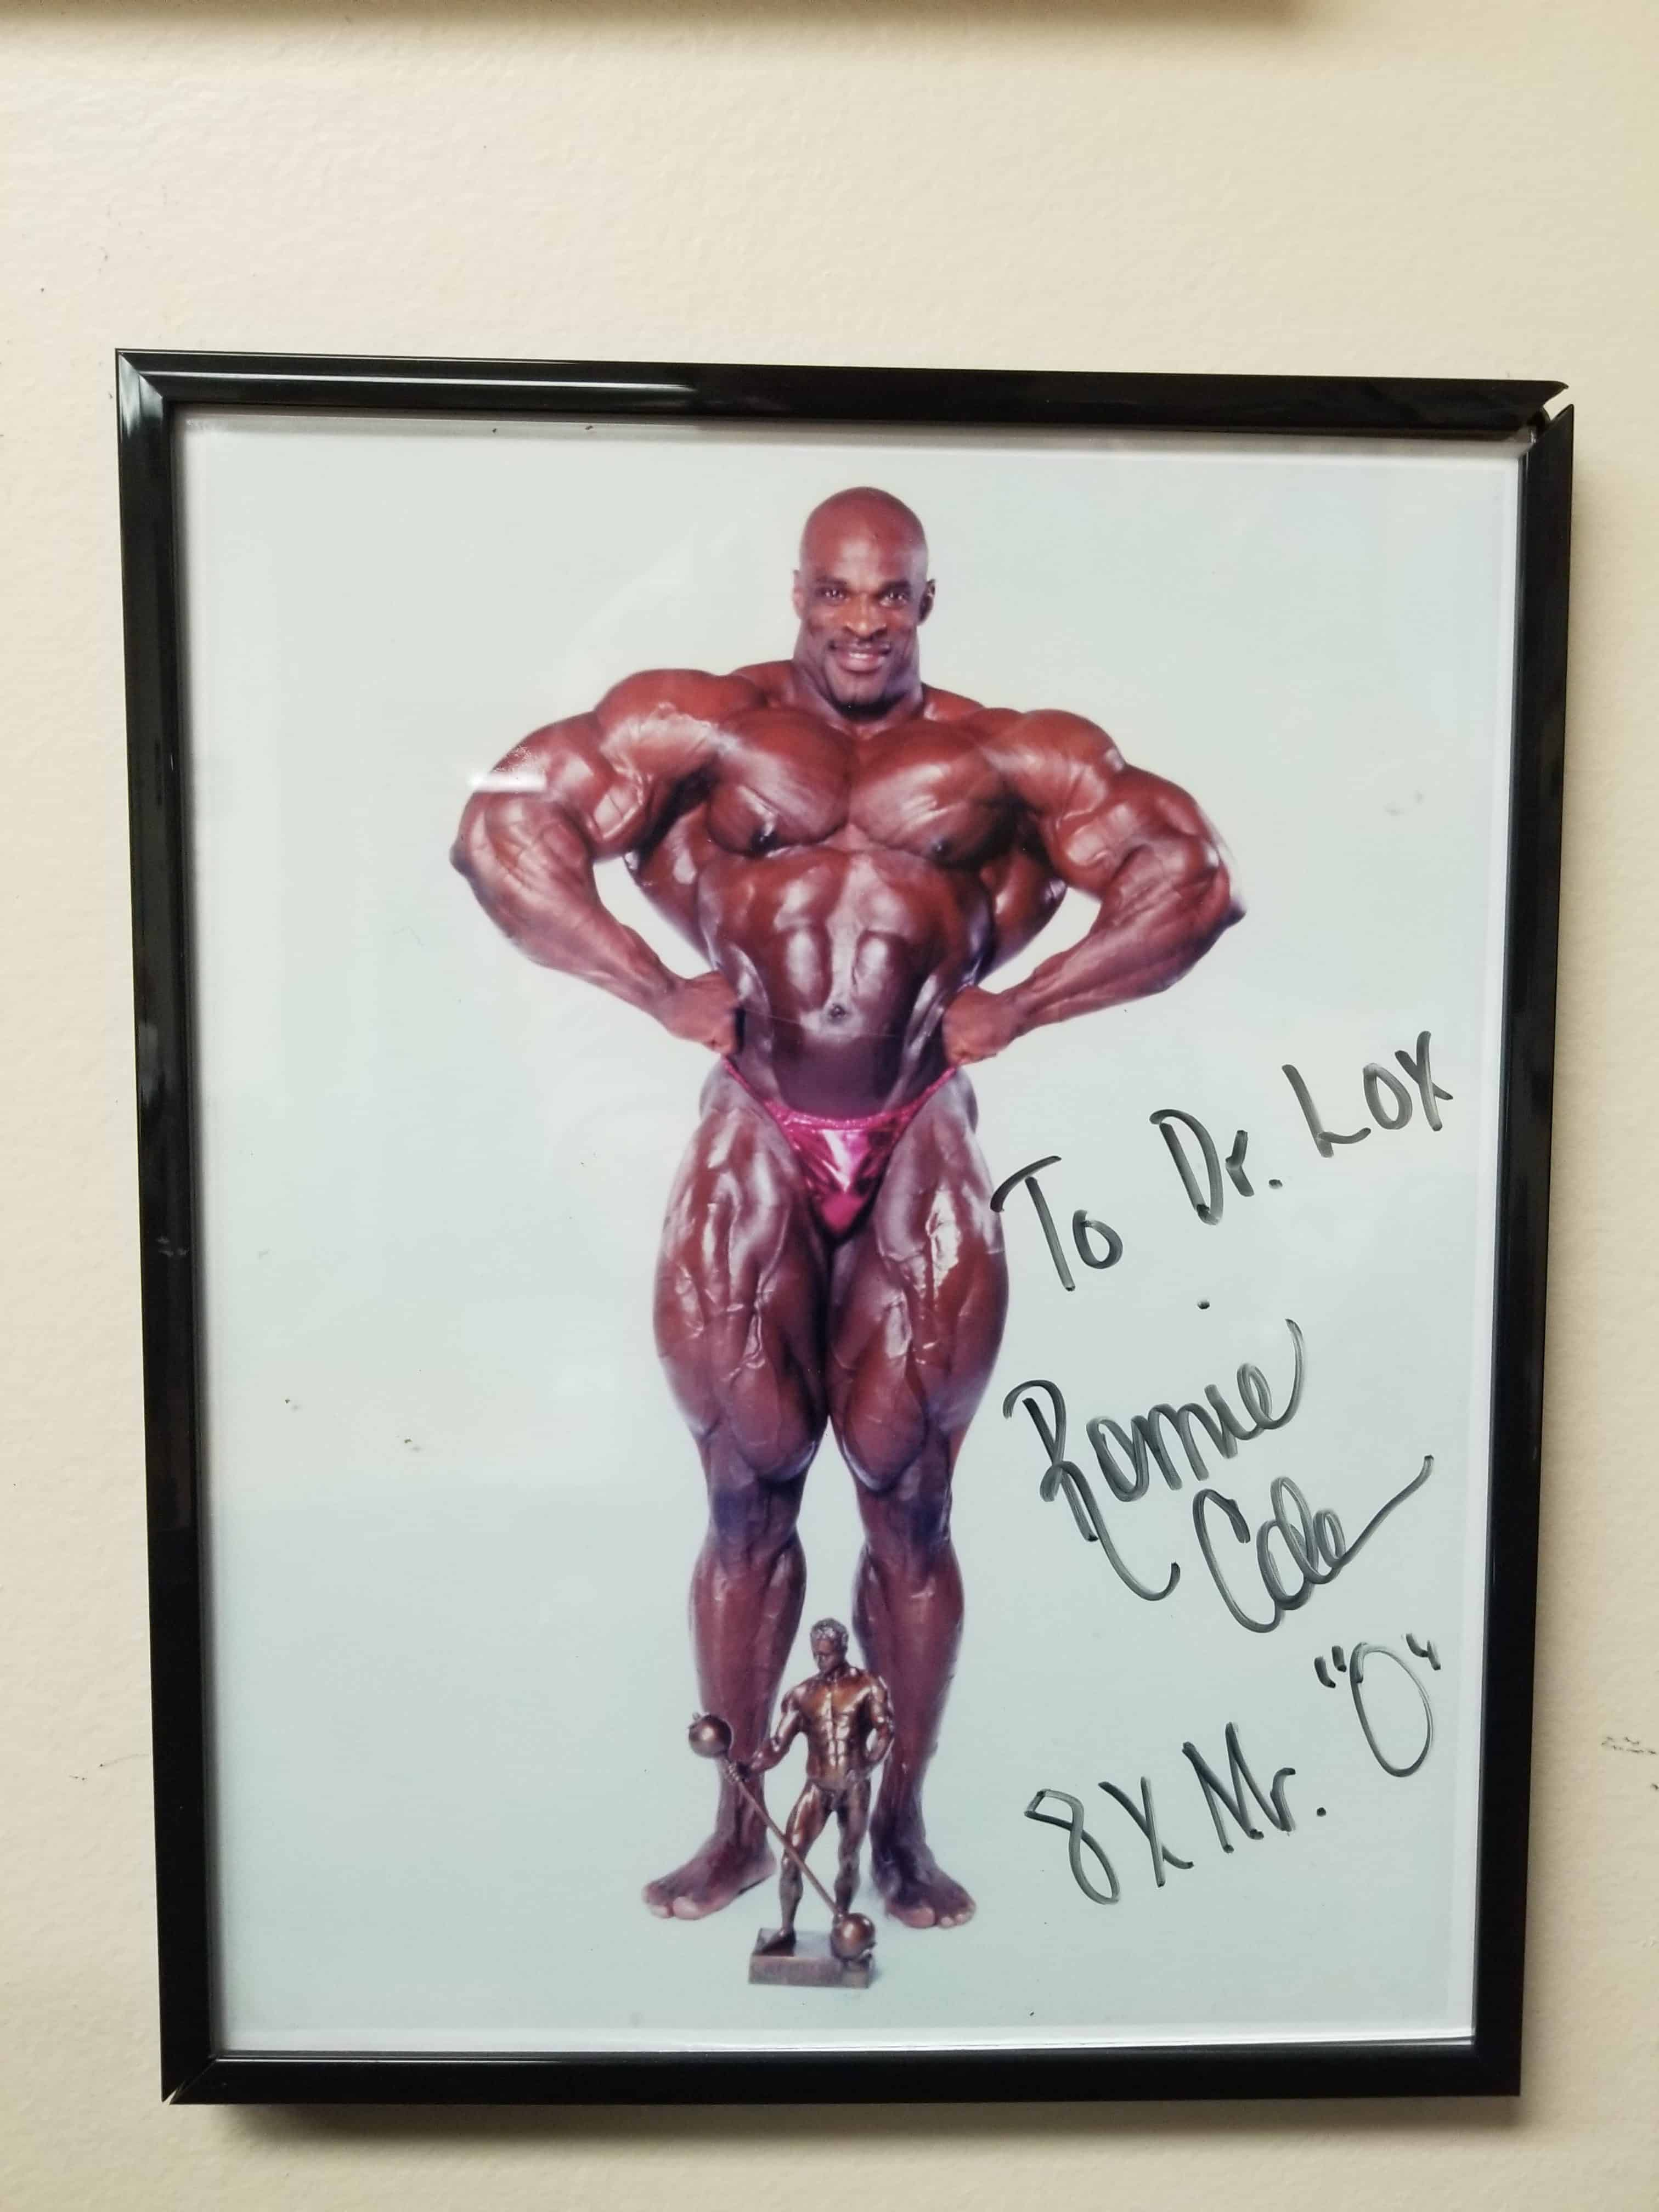 Signed photograph of Ronnie Coleman